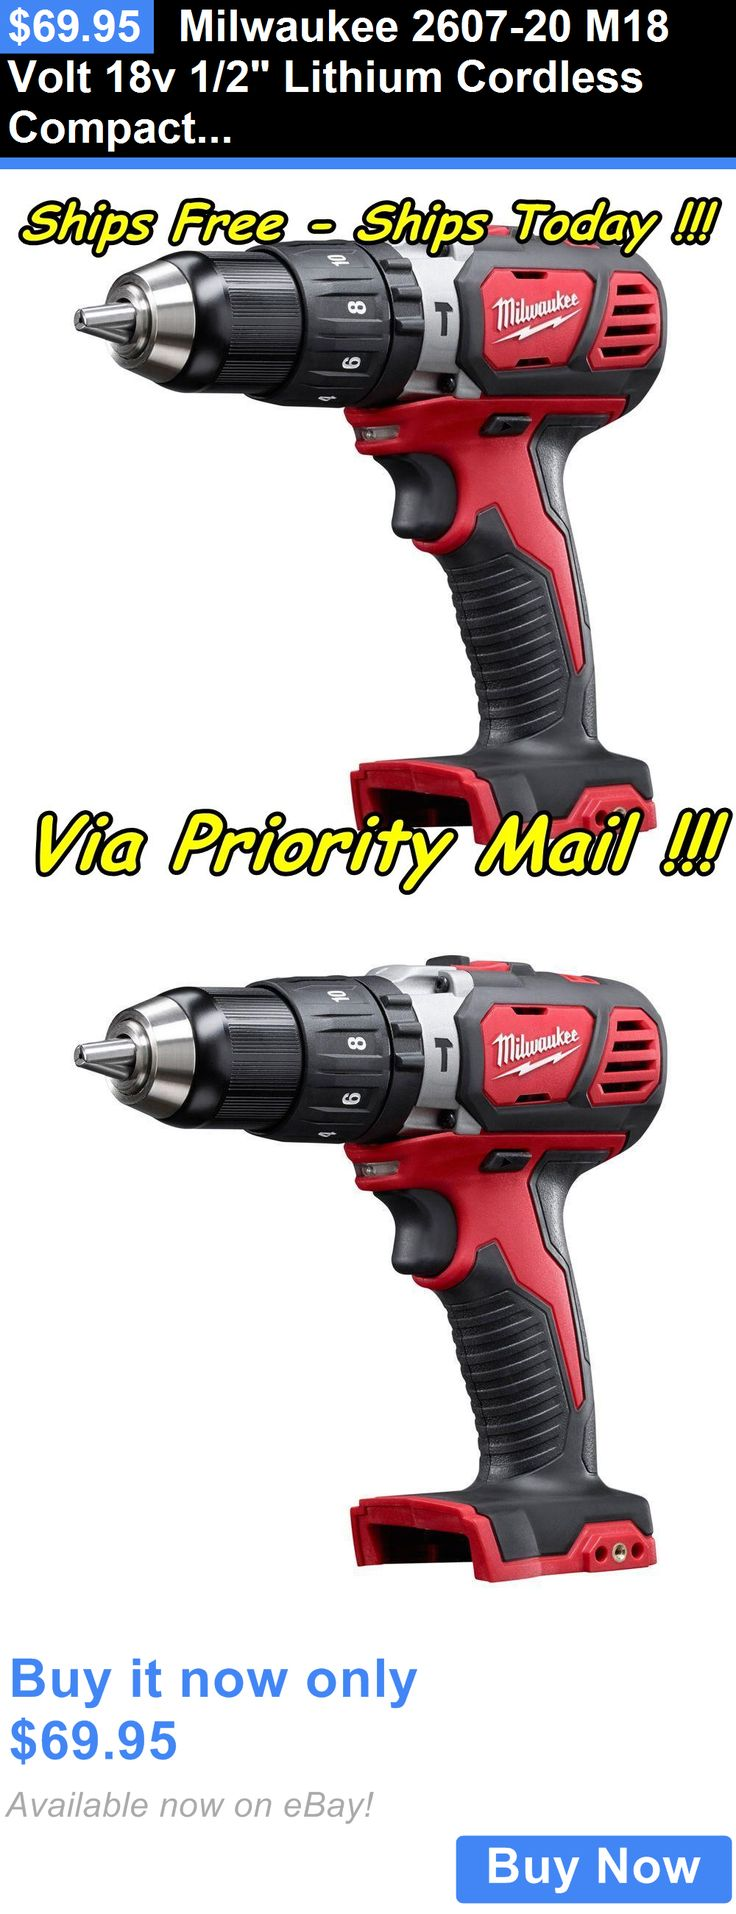 tools: Milwaukee 2607-20 M18 Volt 18V 1/2 Lithium Cordless Compact Hammer Drill Driver BUY IT NOW ONLY: $69.95